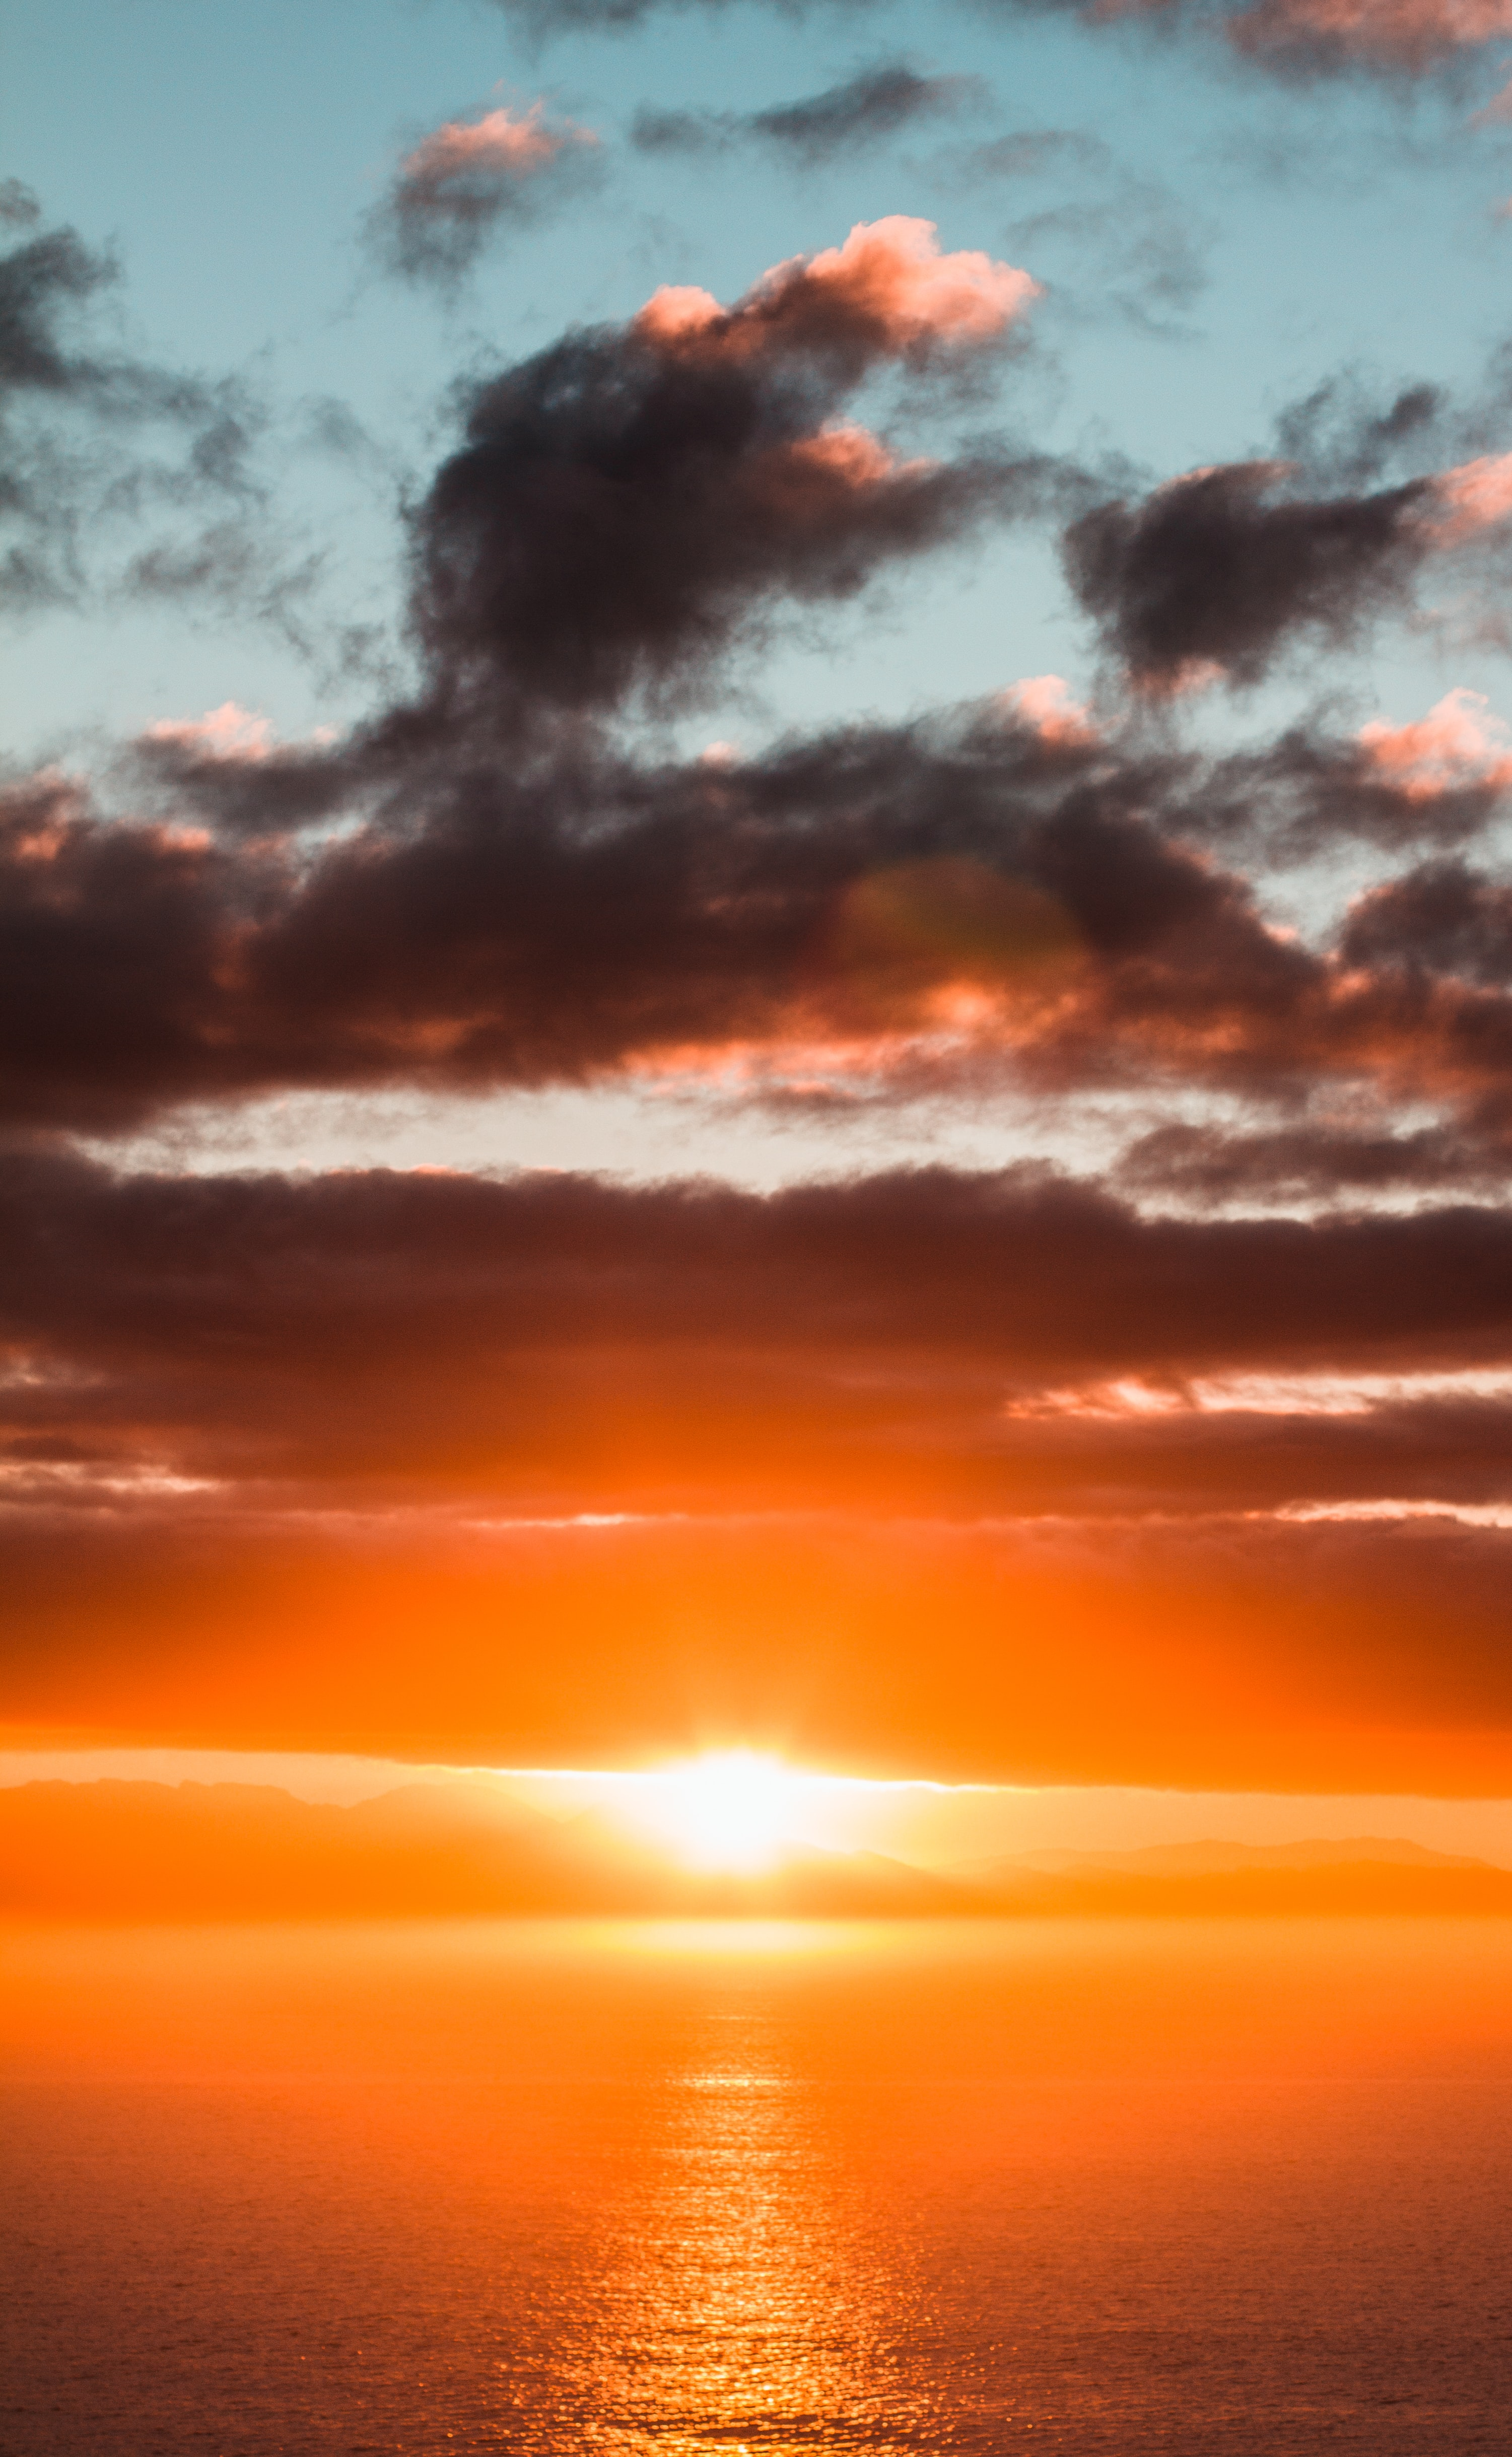 138074 download wallpaper Nature, Sea, Sunset, Glare, Sun screensavers and pictures for free